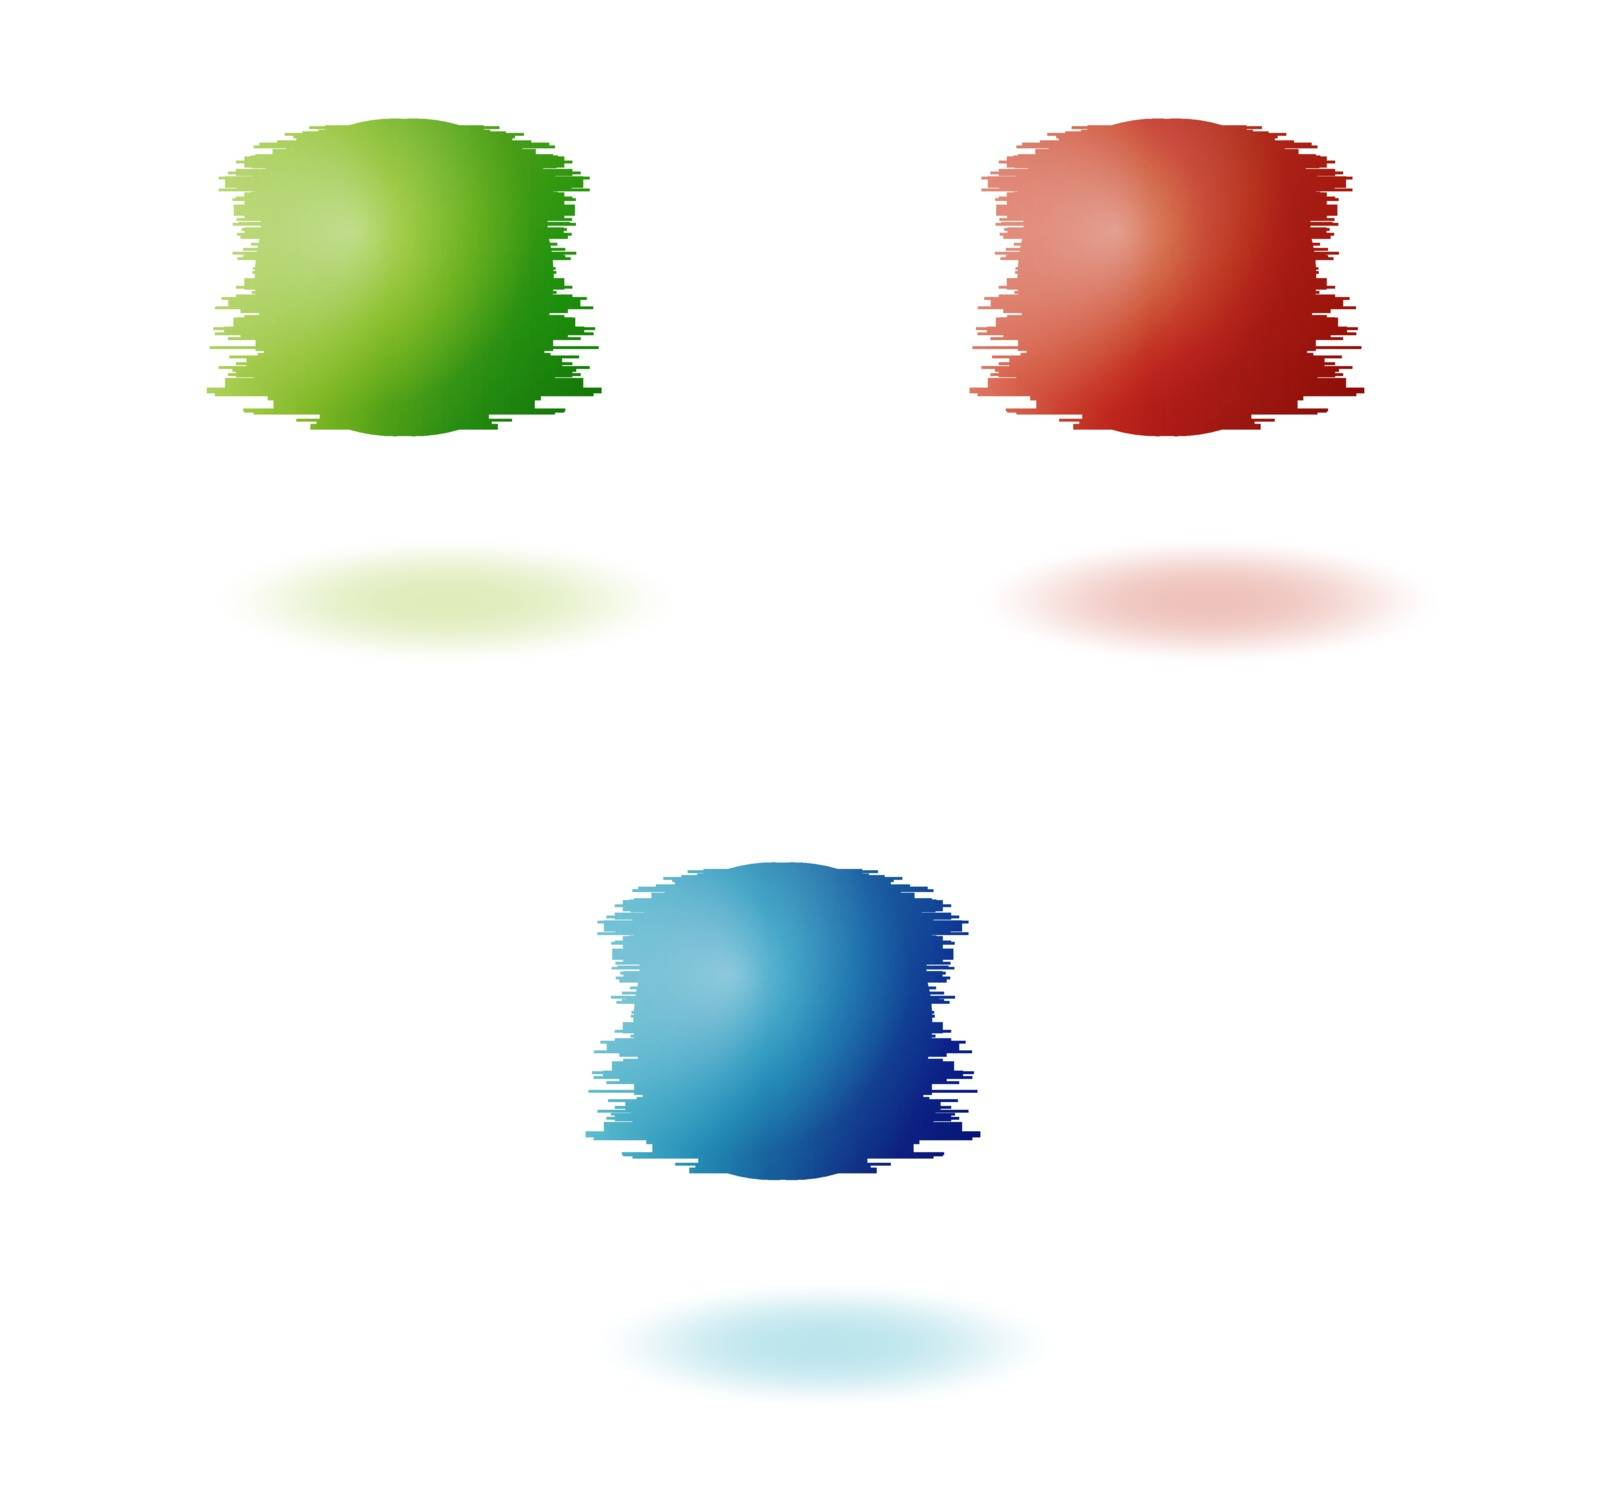 color jagged balls in red green and blue color on white background